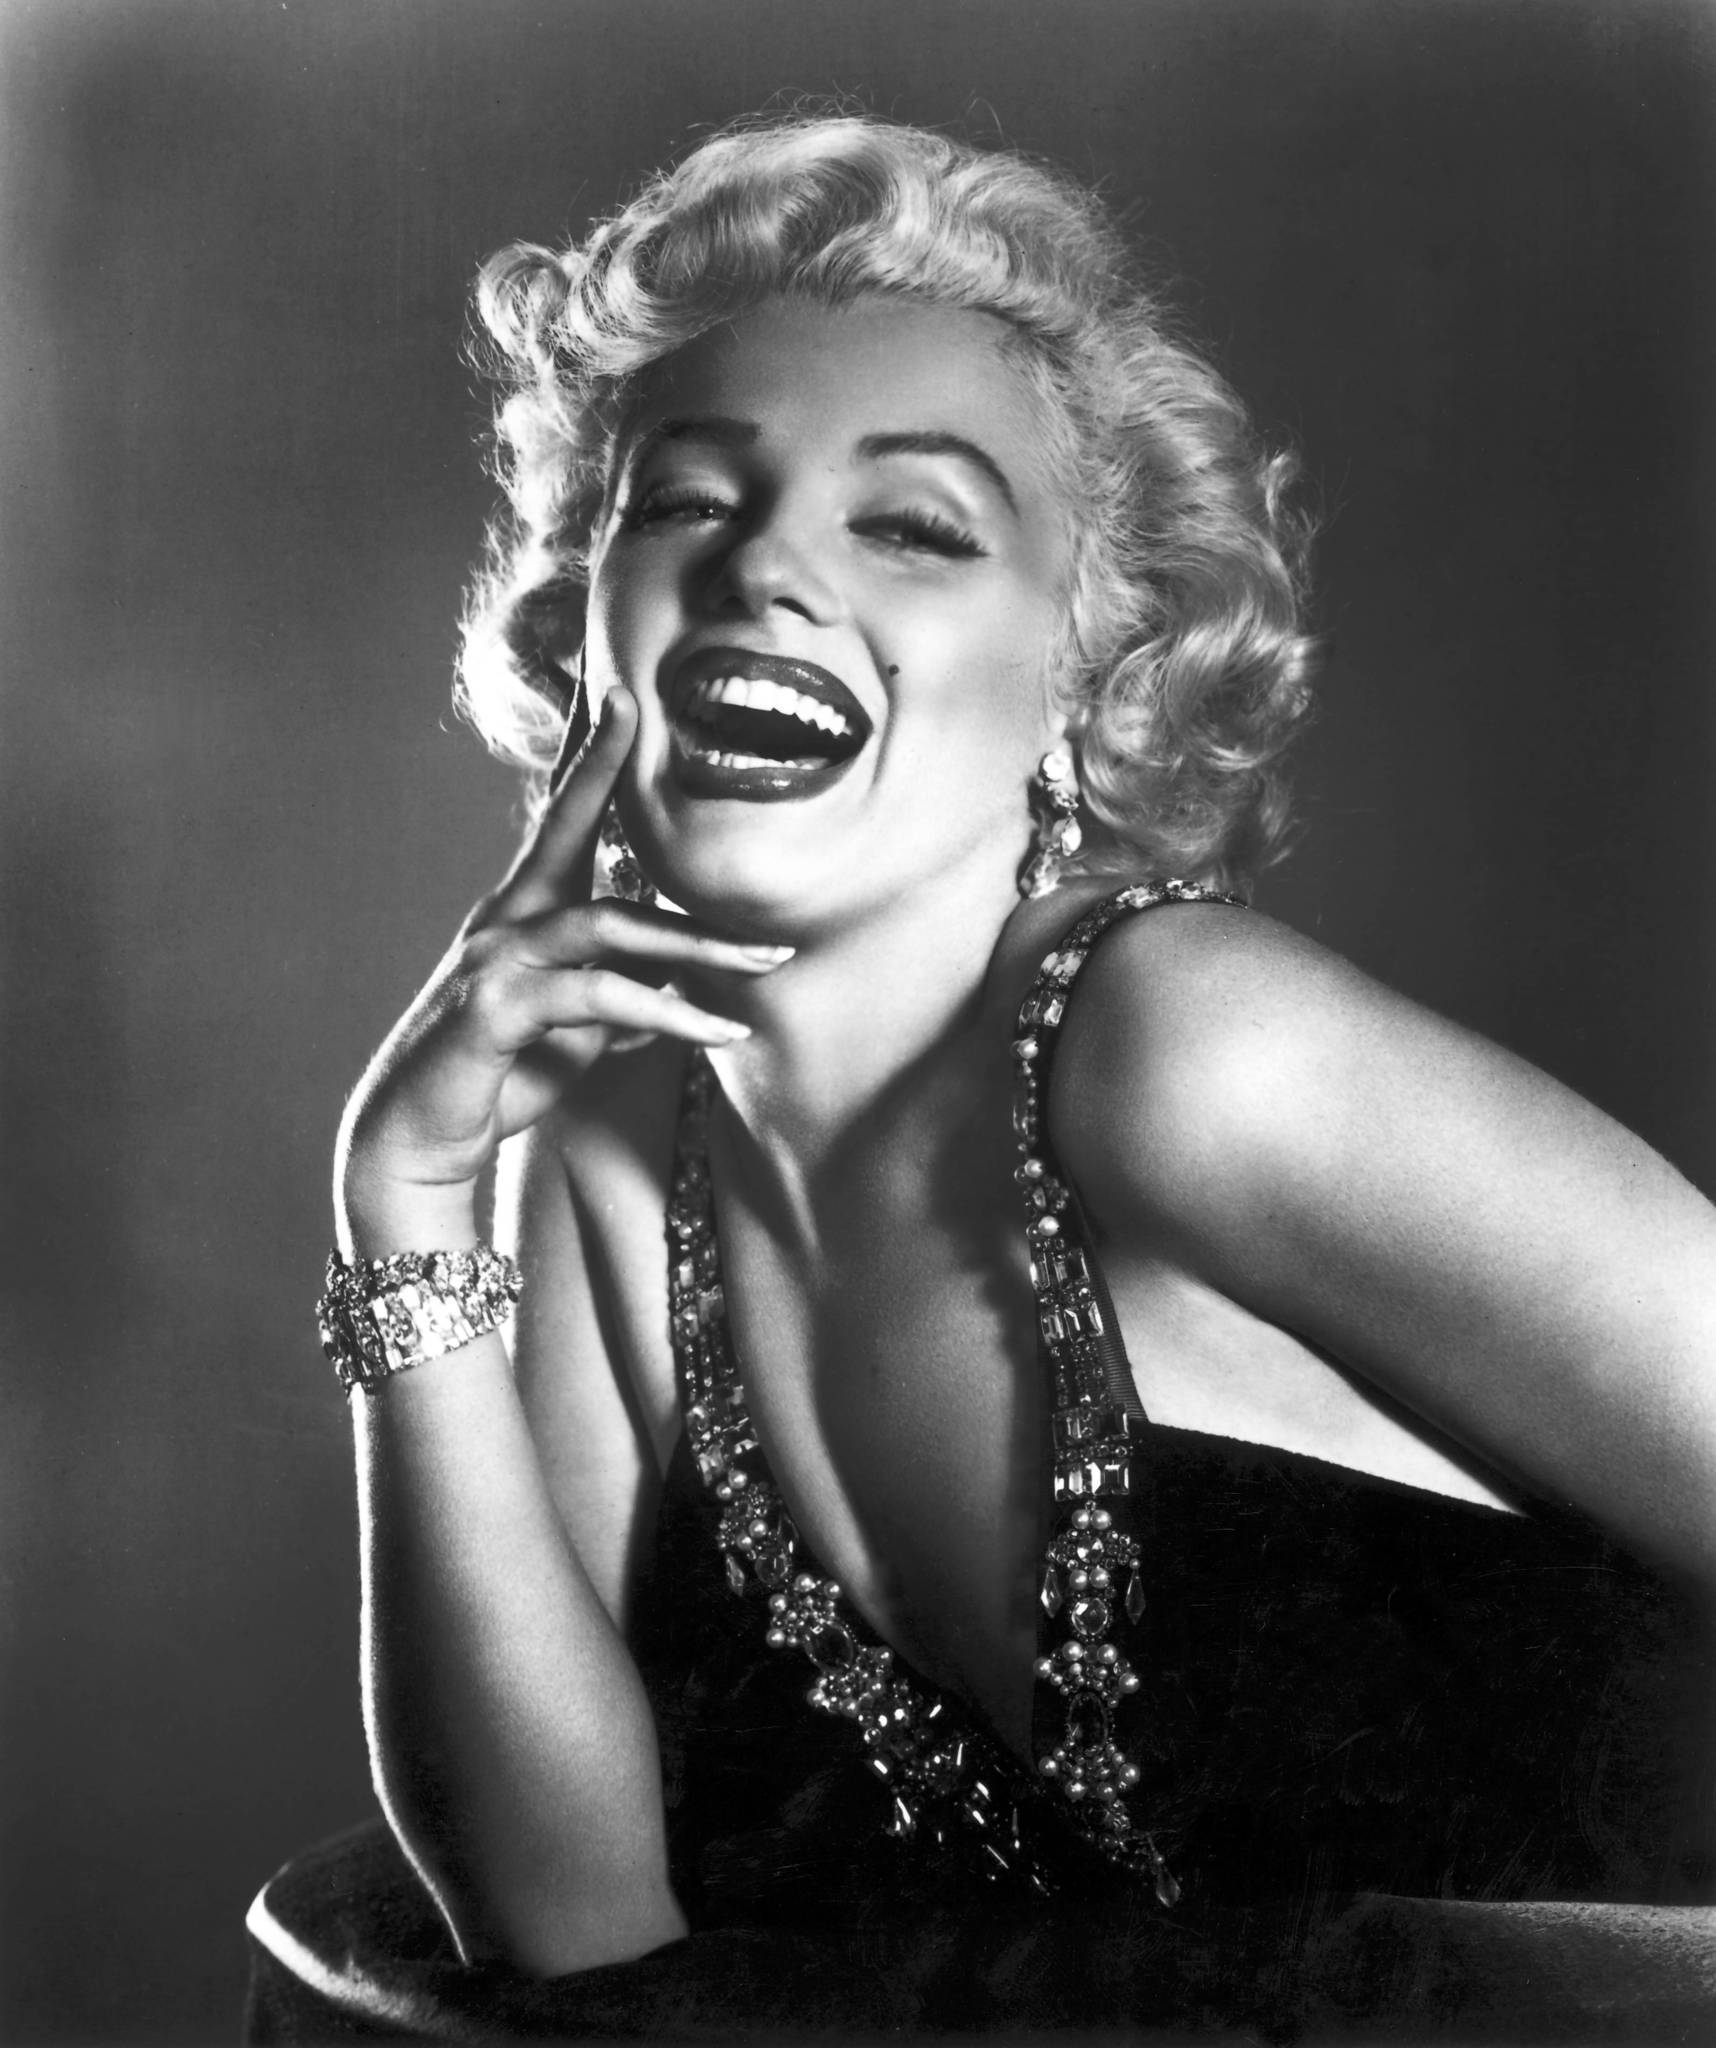 Sunday is the 50th anniversary of Marilyn Monroe's death.